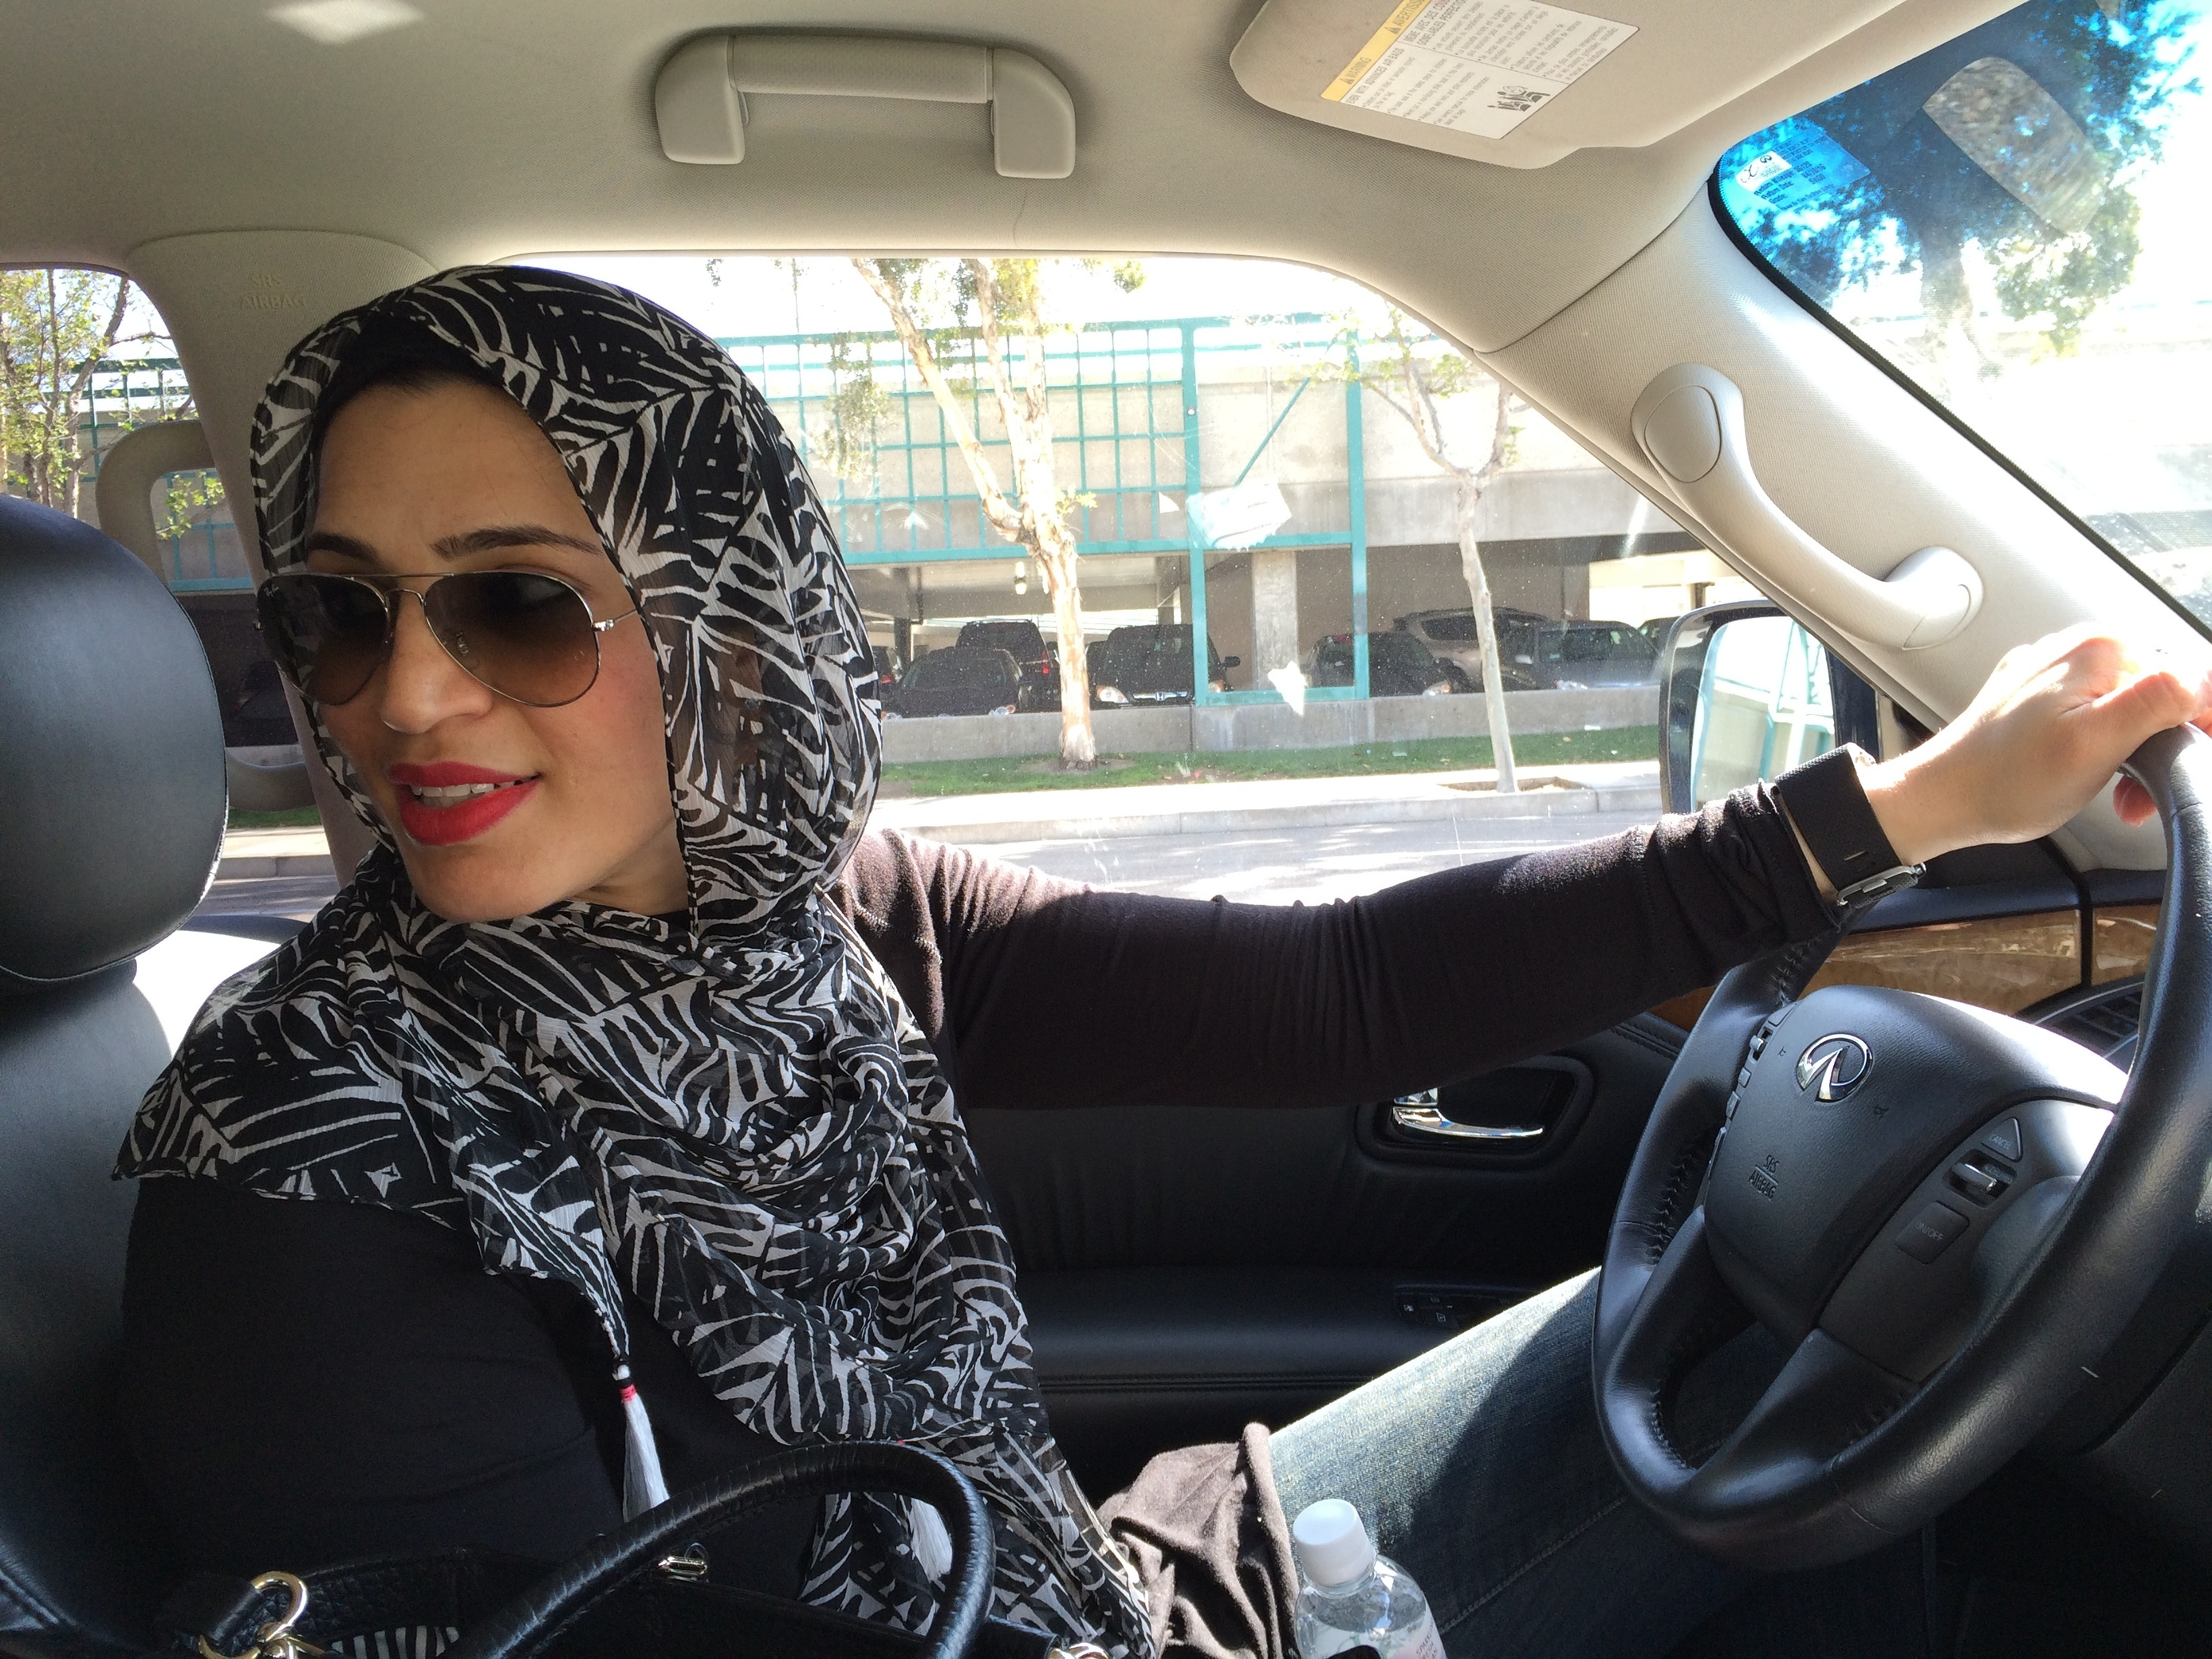 battle mountain muslim girl personals The best adult personals of local singles-live sex chat system and hot real sex online i married looking for a one night stand  about me: i love music, movies, walks on the beach.